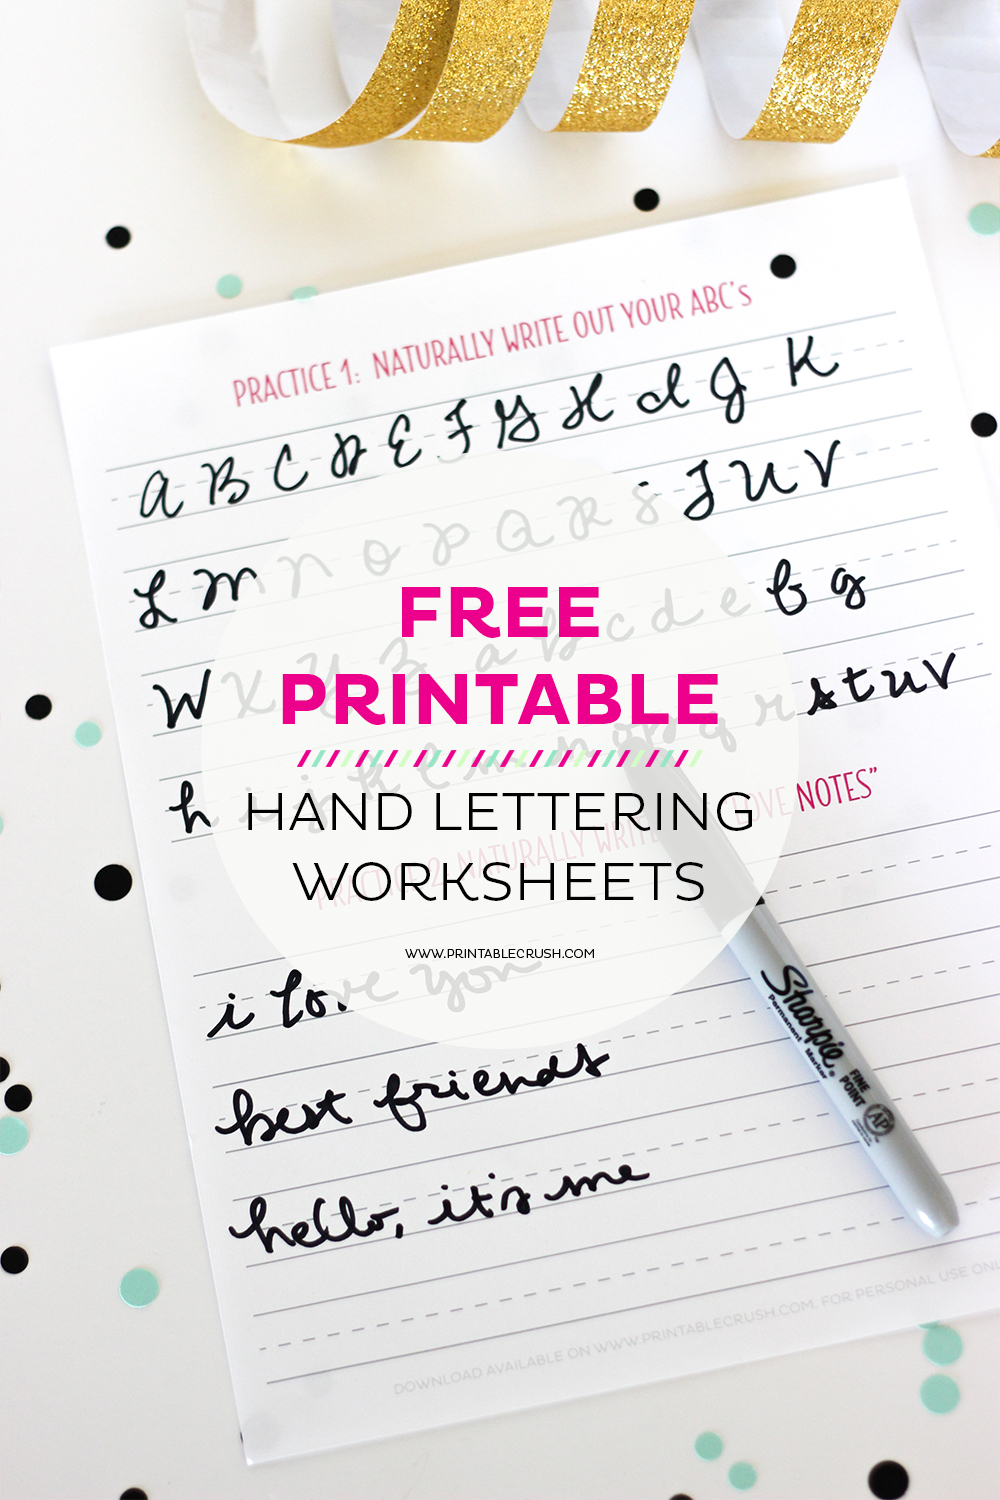 Free hand lettering worksheets for beginners printable